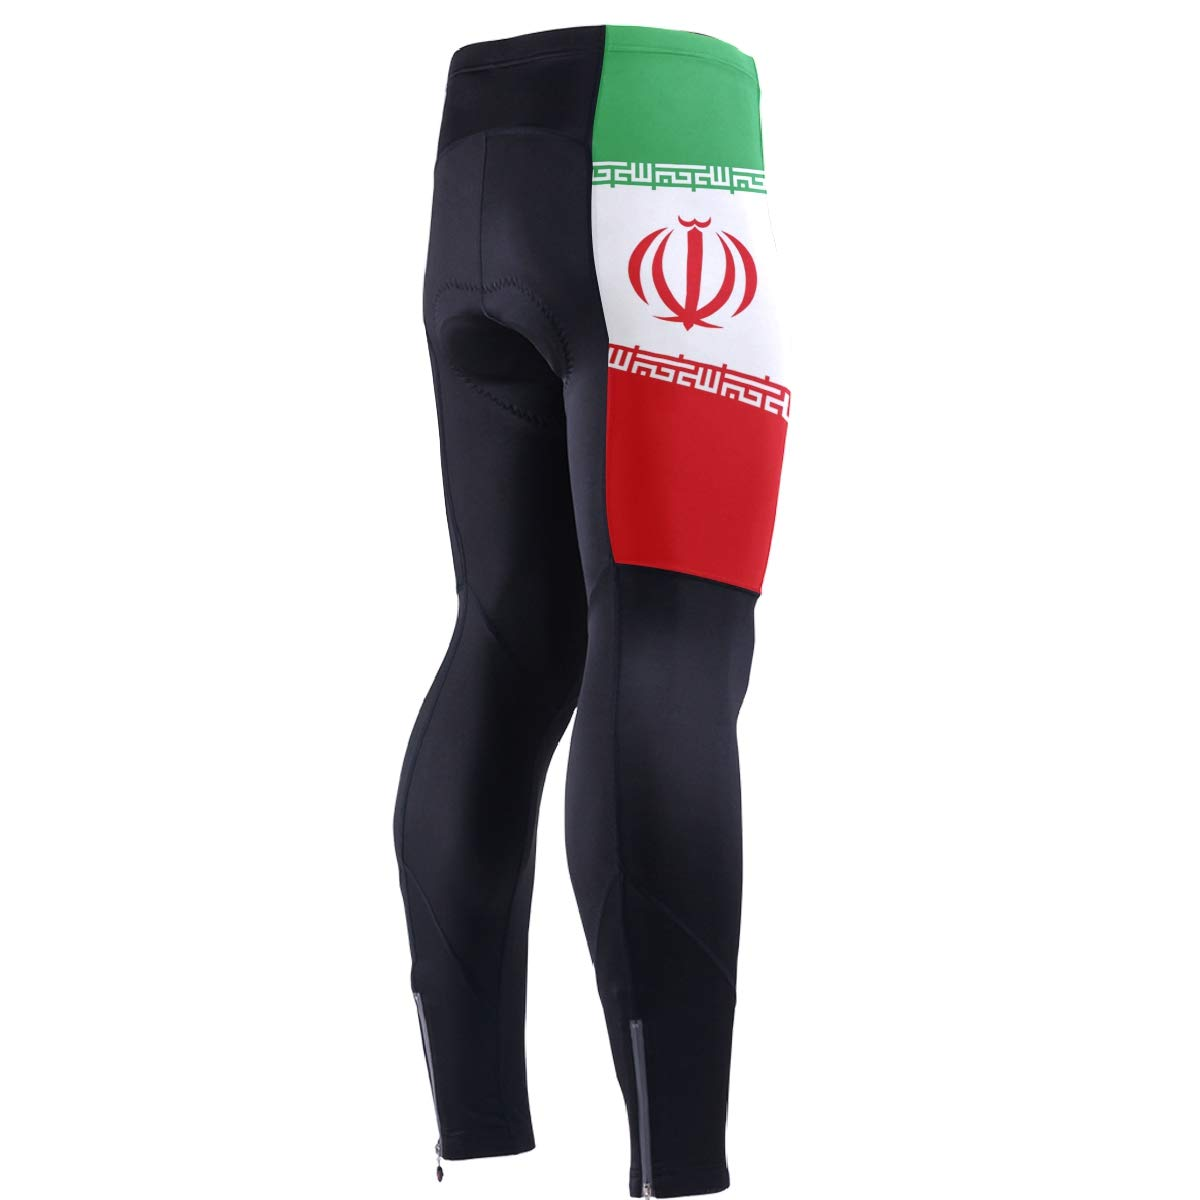 CHINEIN Men's Cycling Jersey Long Sleeve with 3 Rear Pockets Pants Iran Flag by CHINEIN